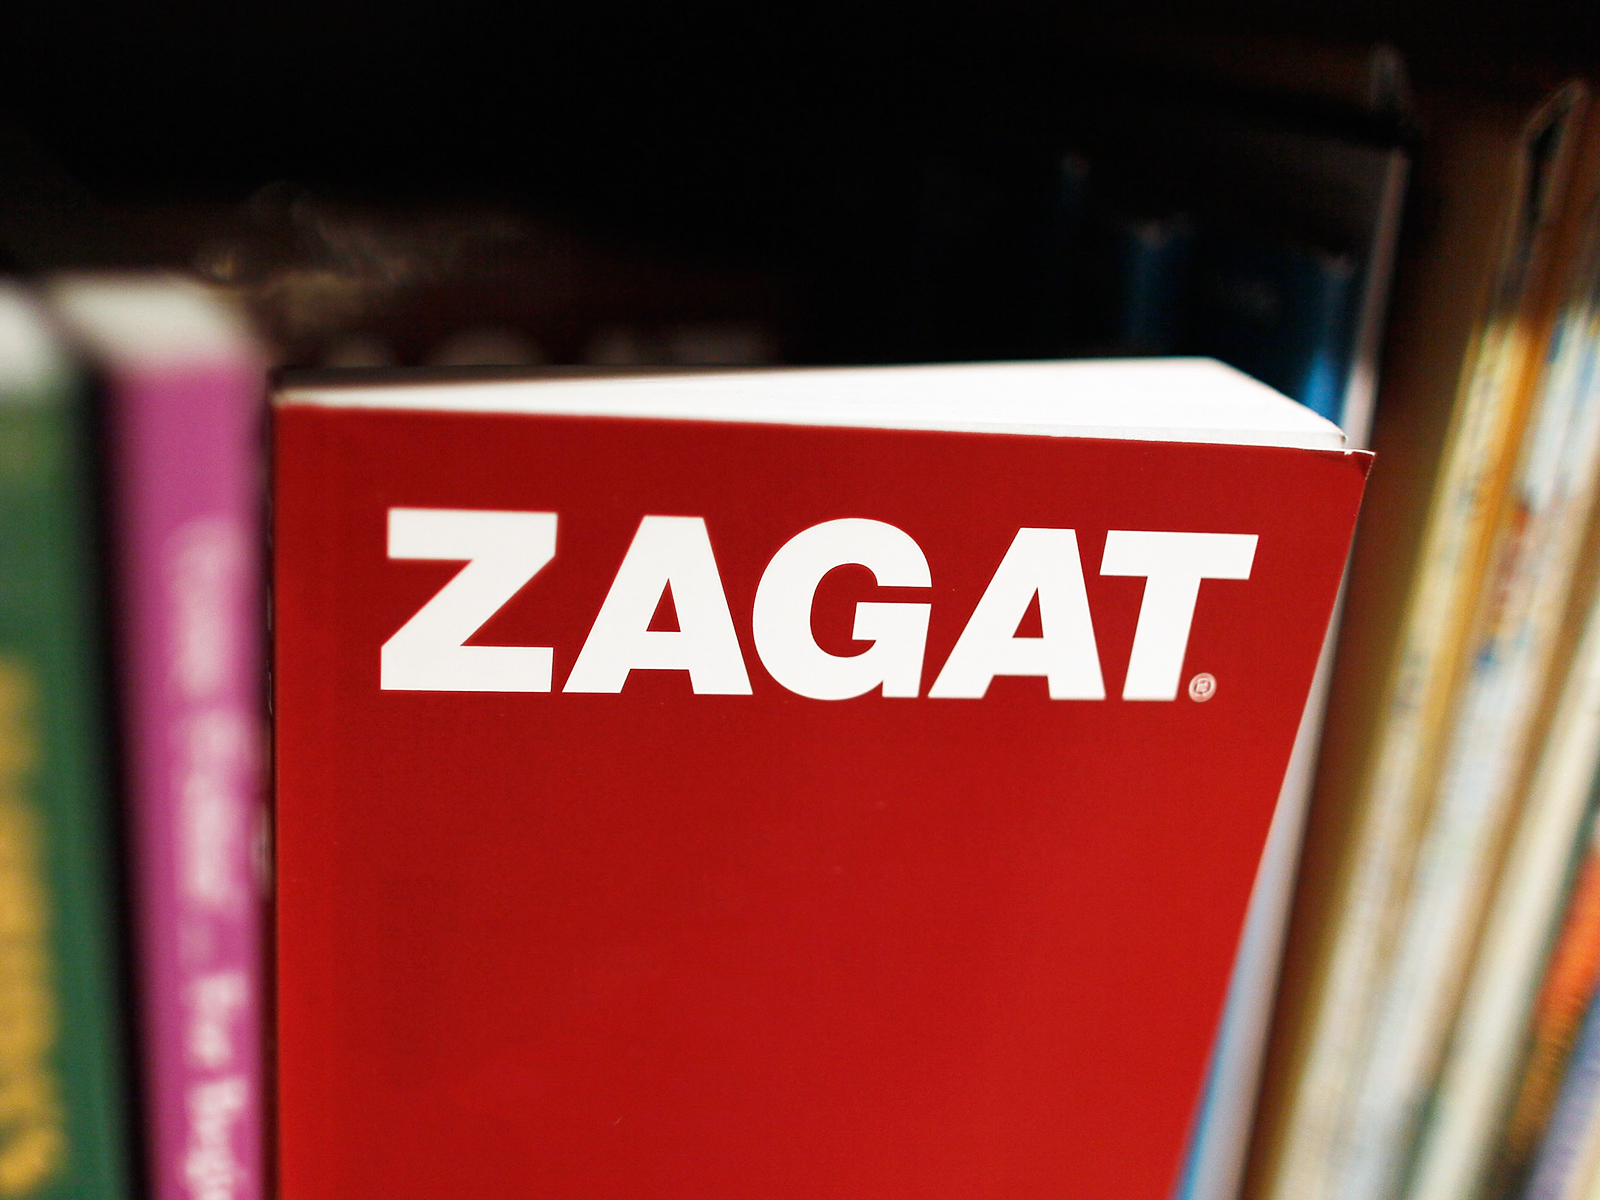 Google sold Zagat, but it'll probably be OK